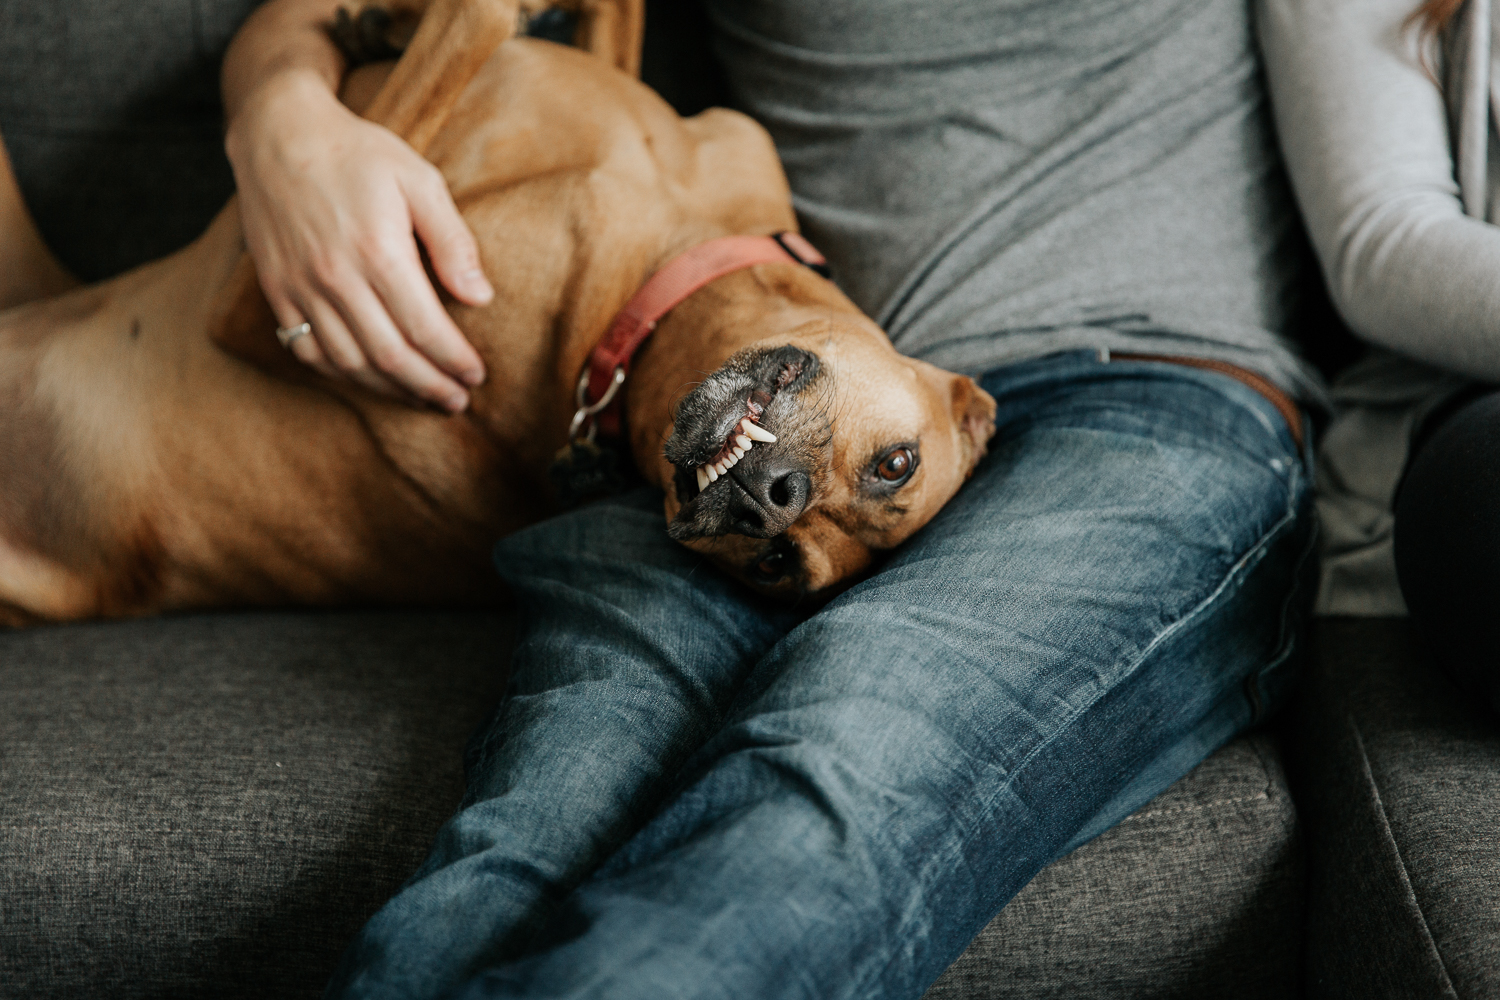 large brown boxer-mix dog lying on across man's lao on couch, looking at camera, smiling - Markham In-HomePhotos